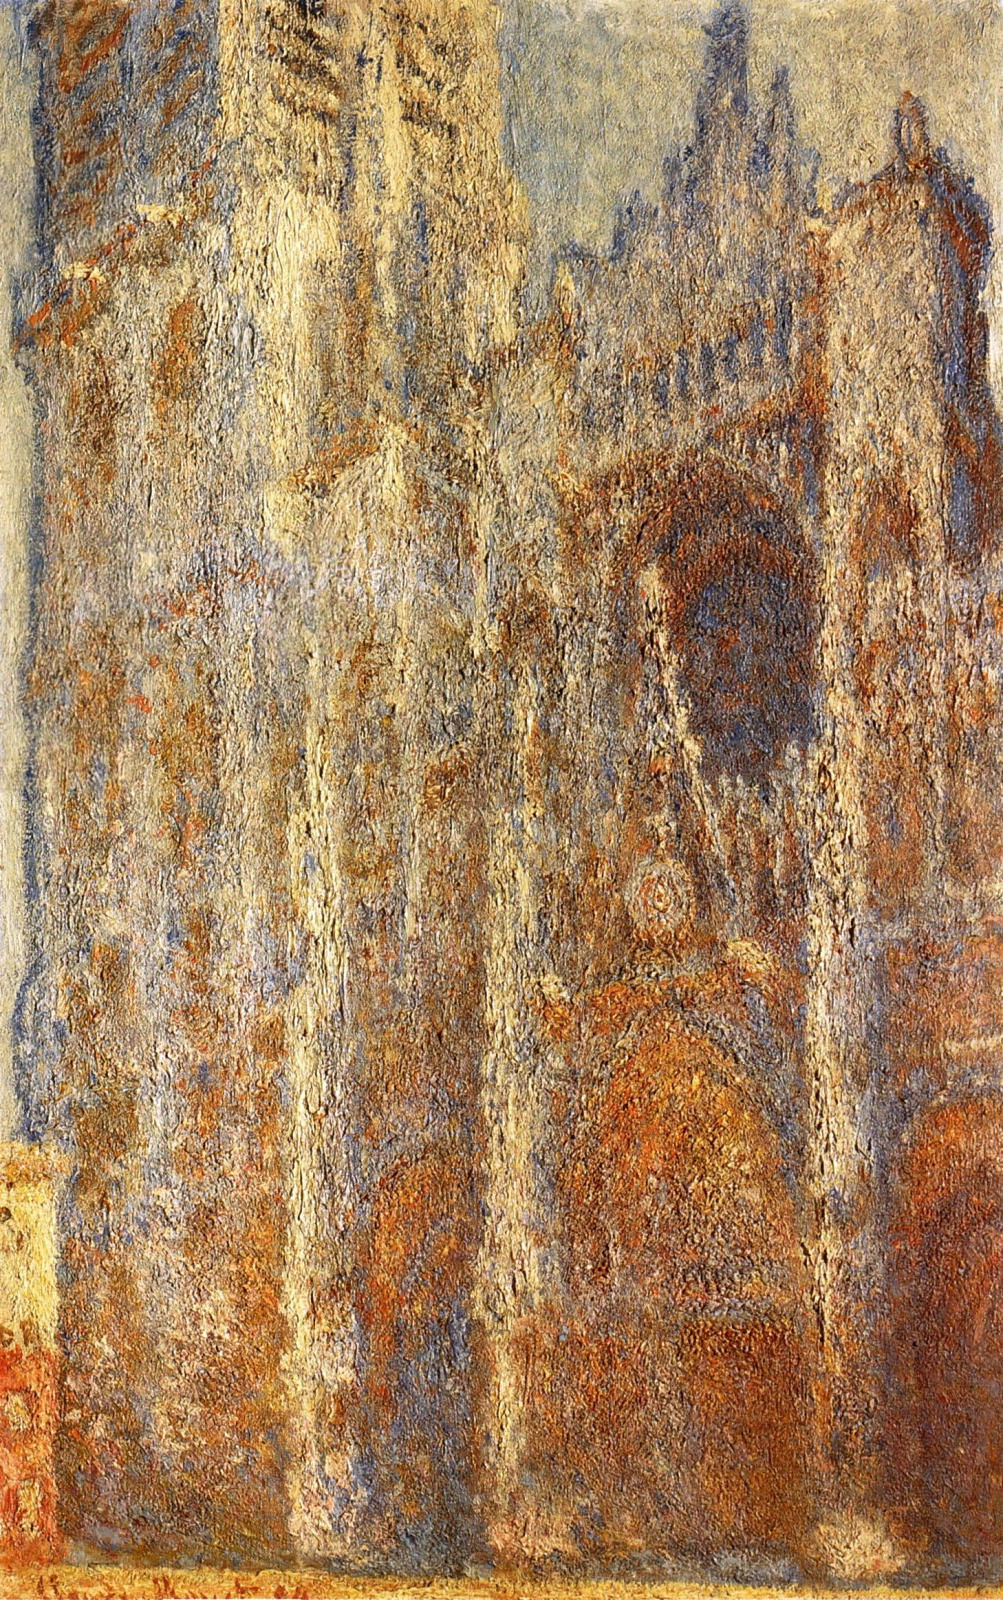 Monet, Rouen Cathedral at noon